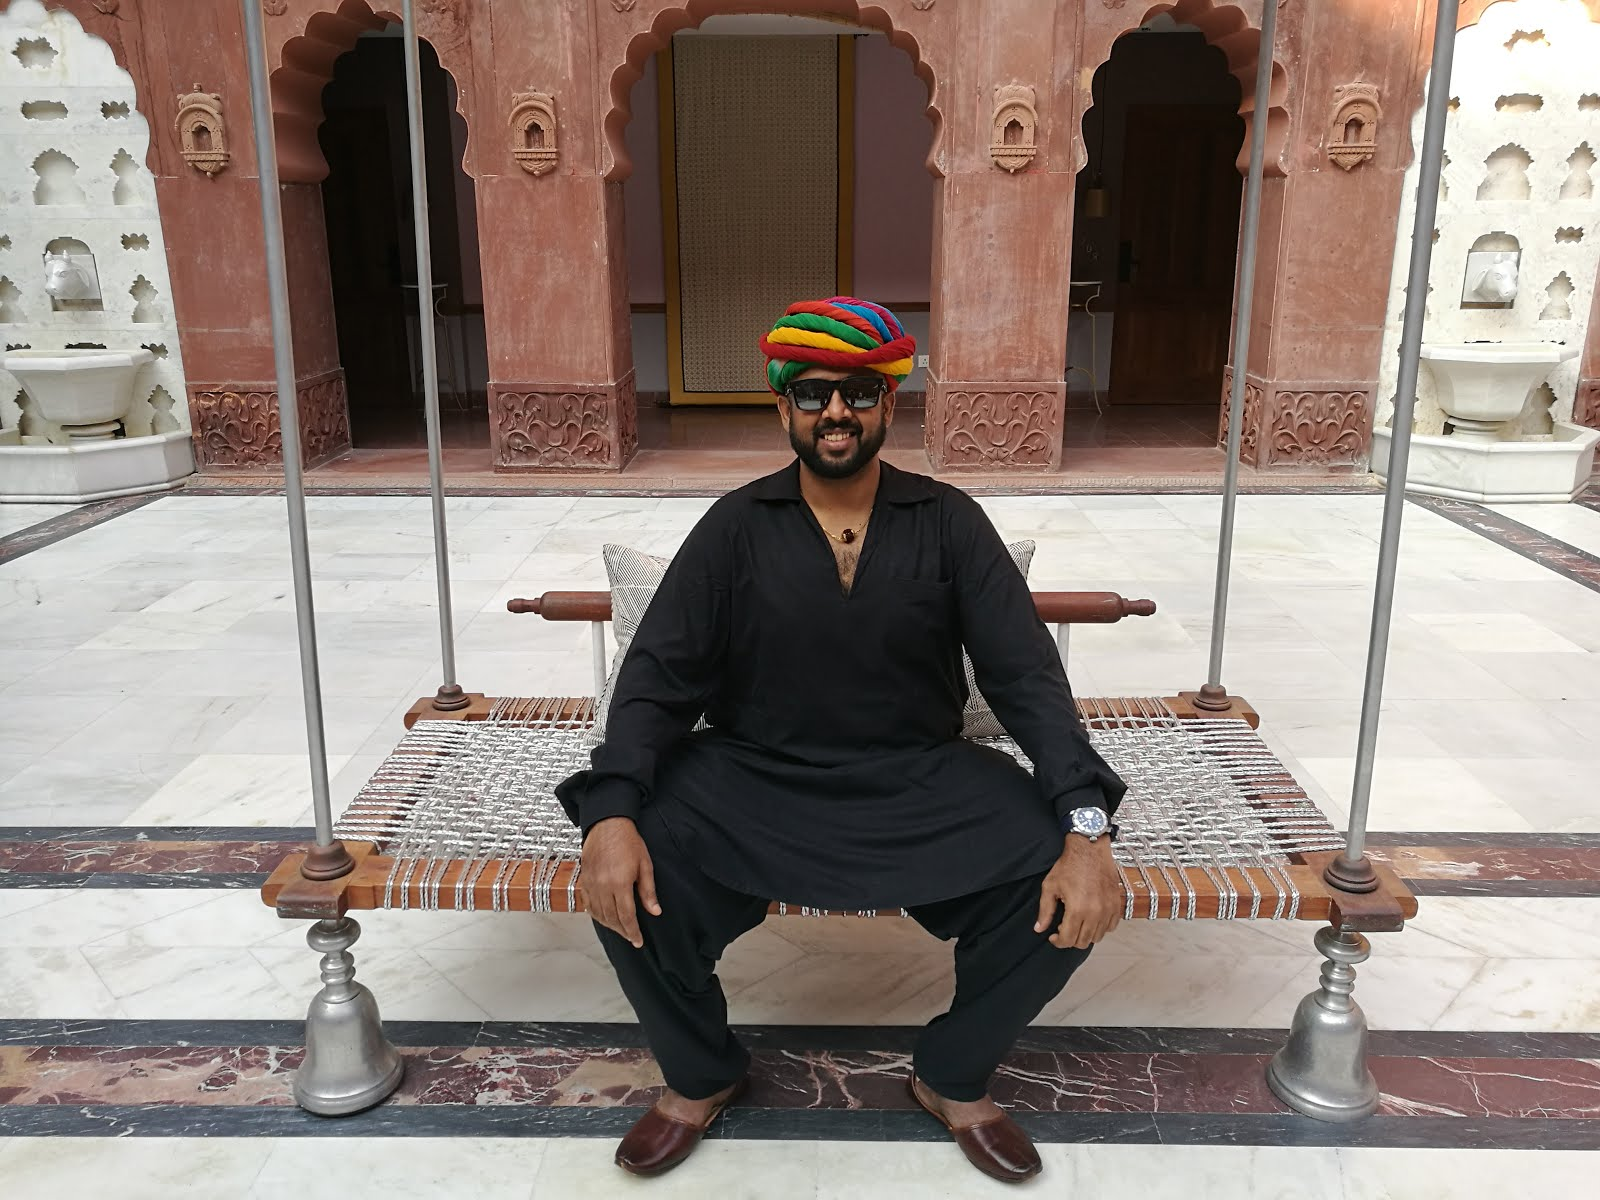 Chilling out at Narendra Bhawan, Bikaner